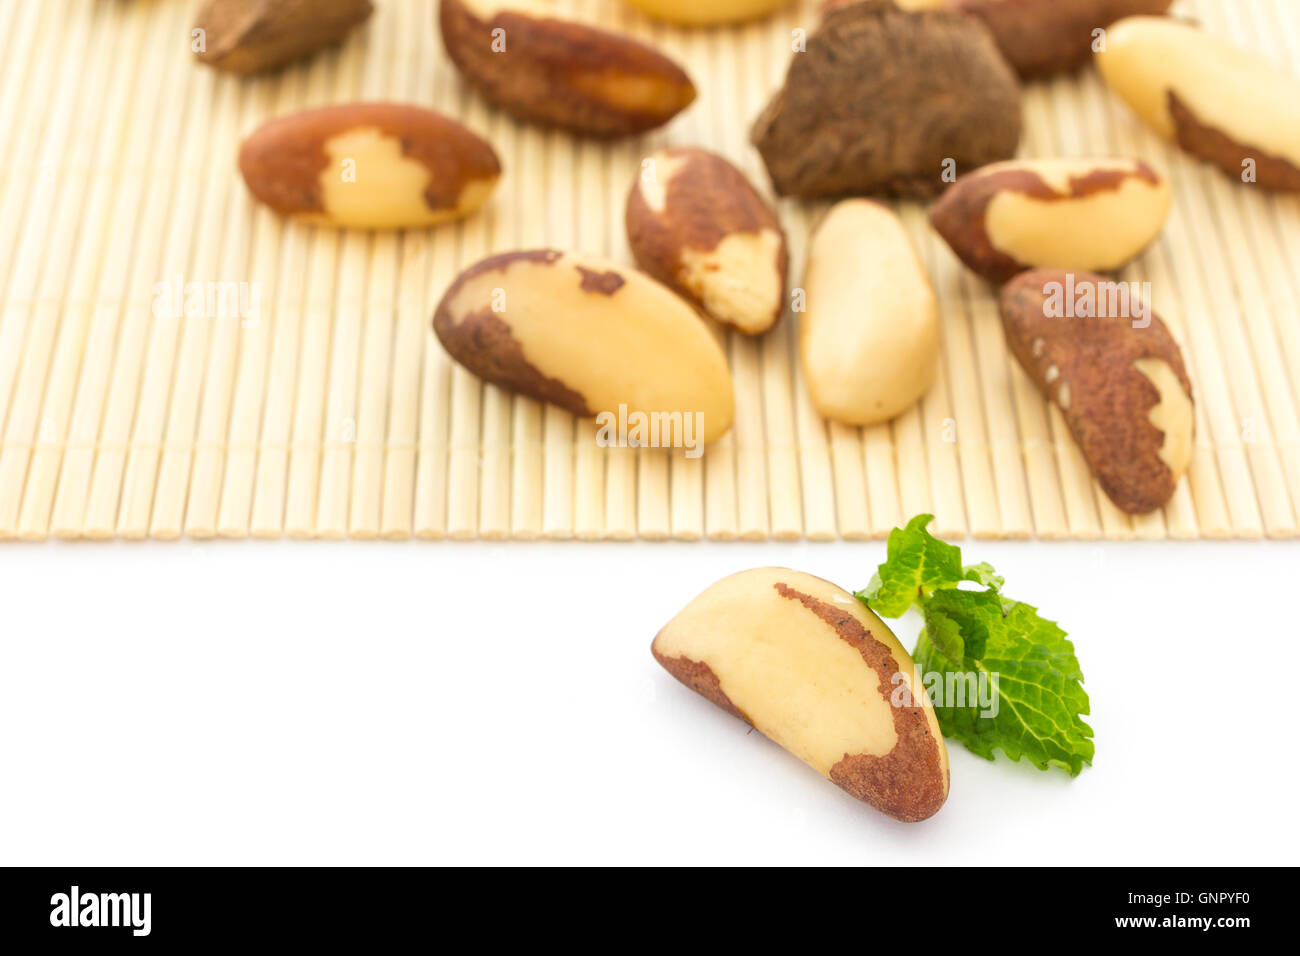 bertholletia excelsa, known as Brazil Nuts. Rich source of selenium and antioxidant - Stock Image